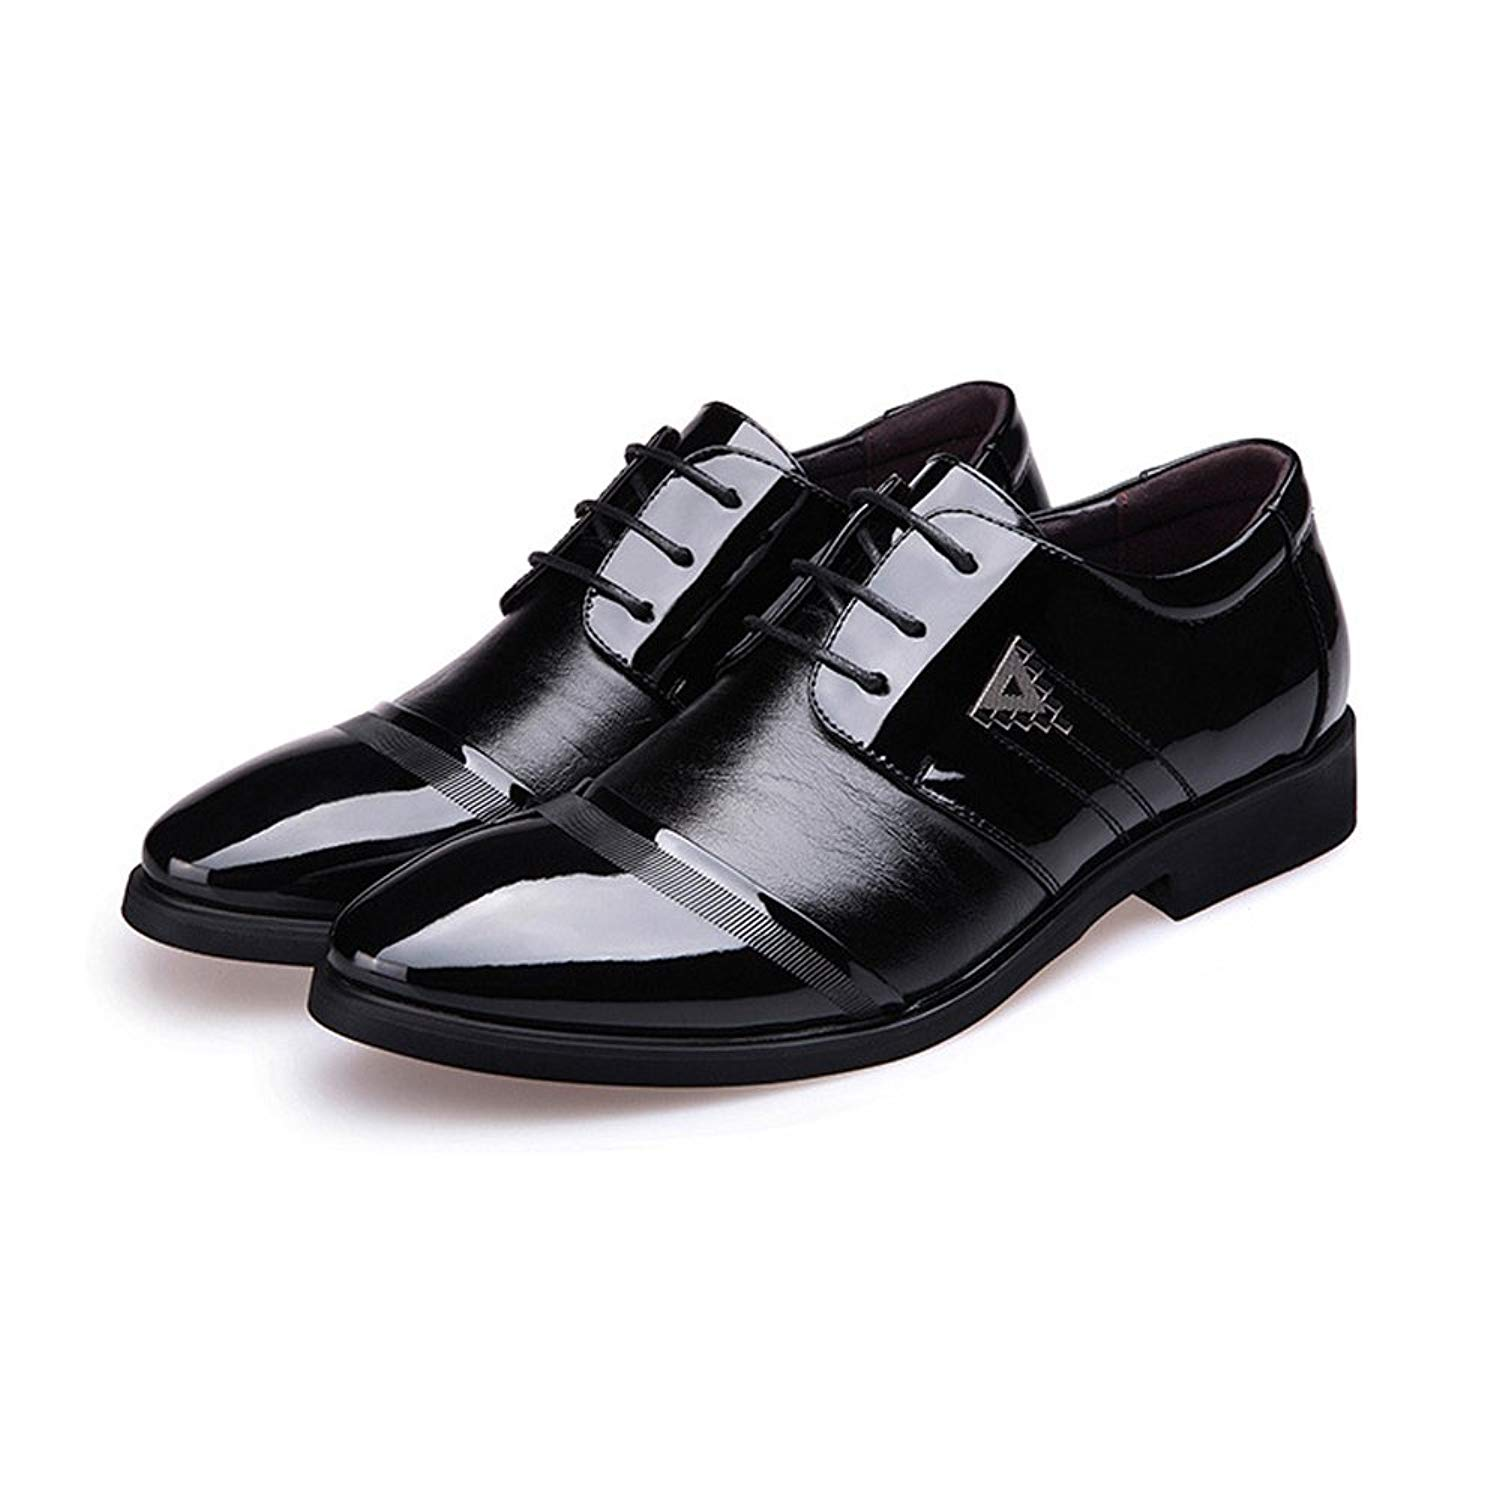 Muyin Men's Business Shoes Smooth PU Leather Splice Vamp Lace up Lined Block Heel Oxfords